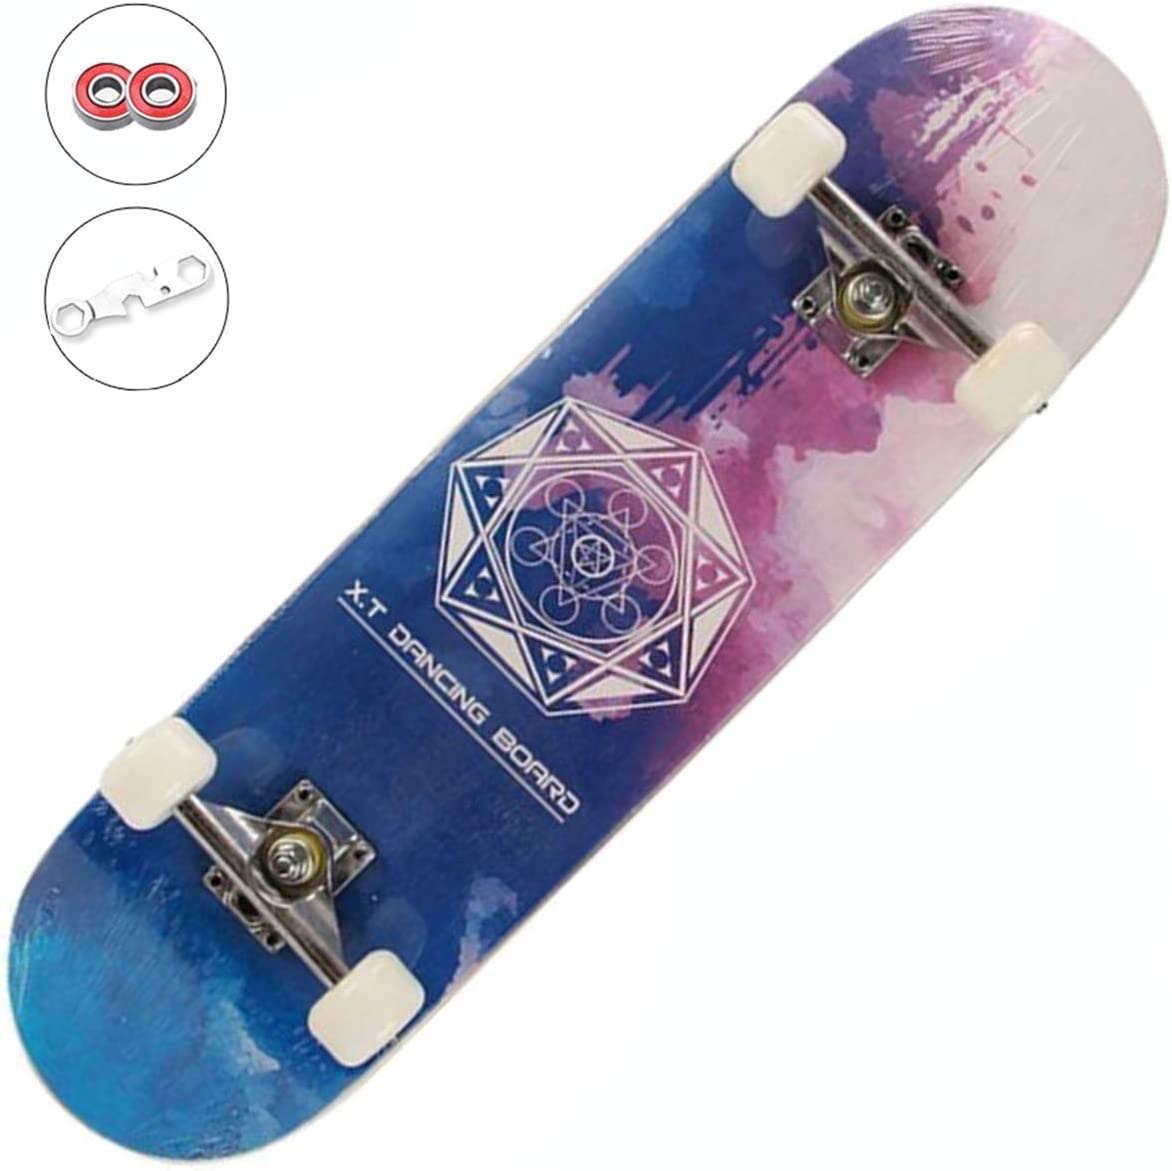 Beginners Girls,Boys,Kids,Adults Sumeber Skateboards Complete 31x8 7 Layer Canadian Maple Double Kick Concave Deck Skating Skateboard for Teens